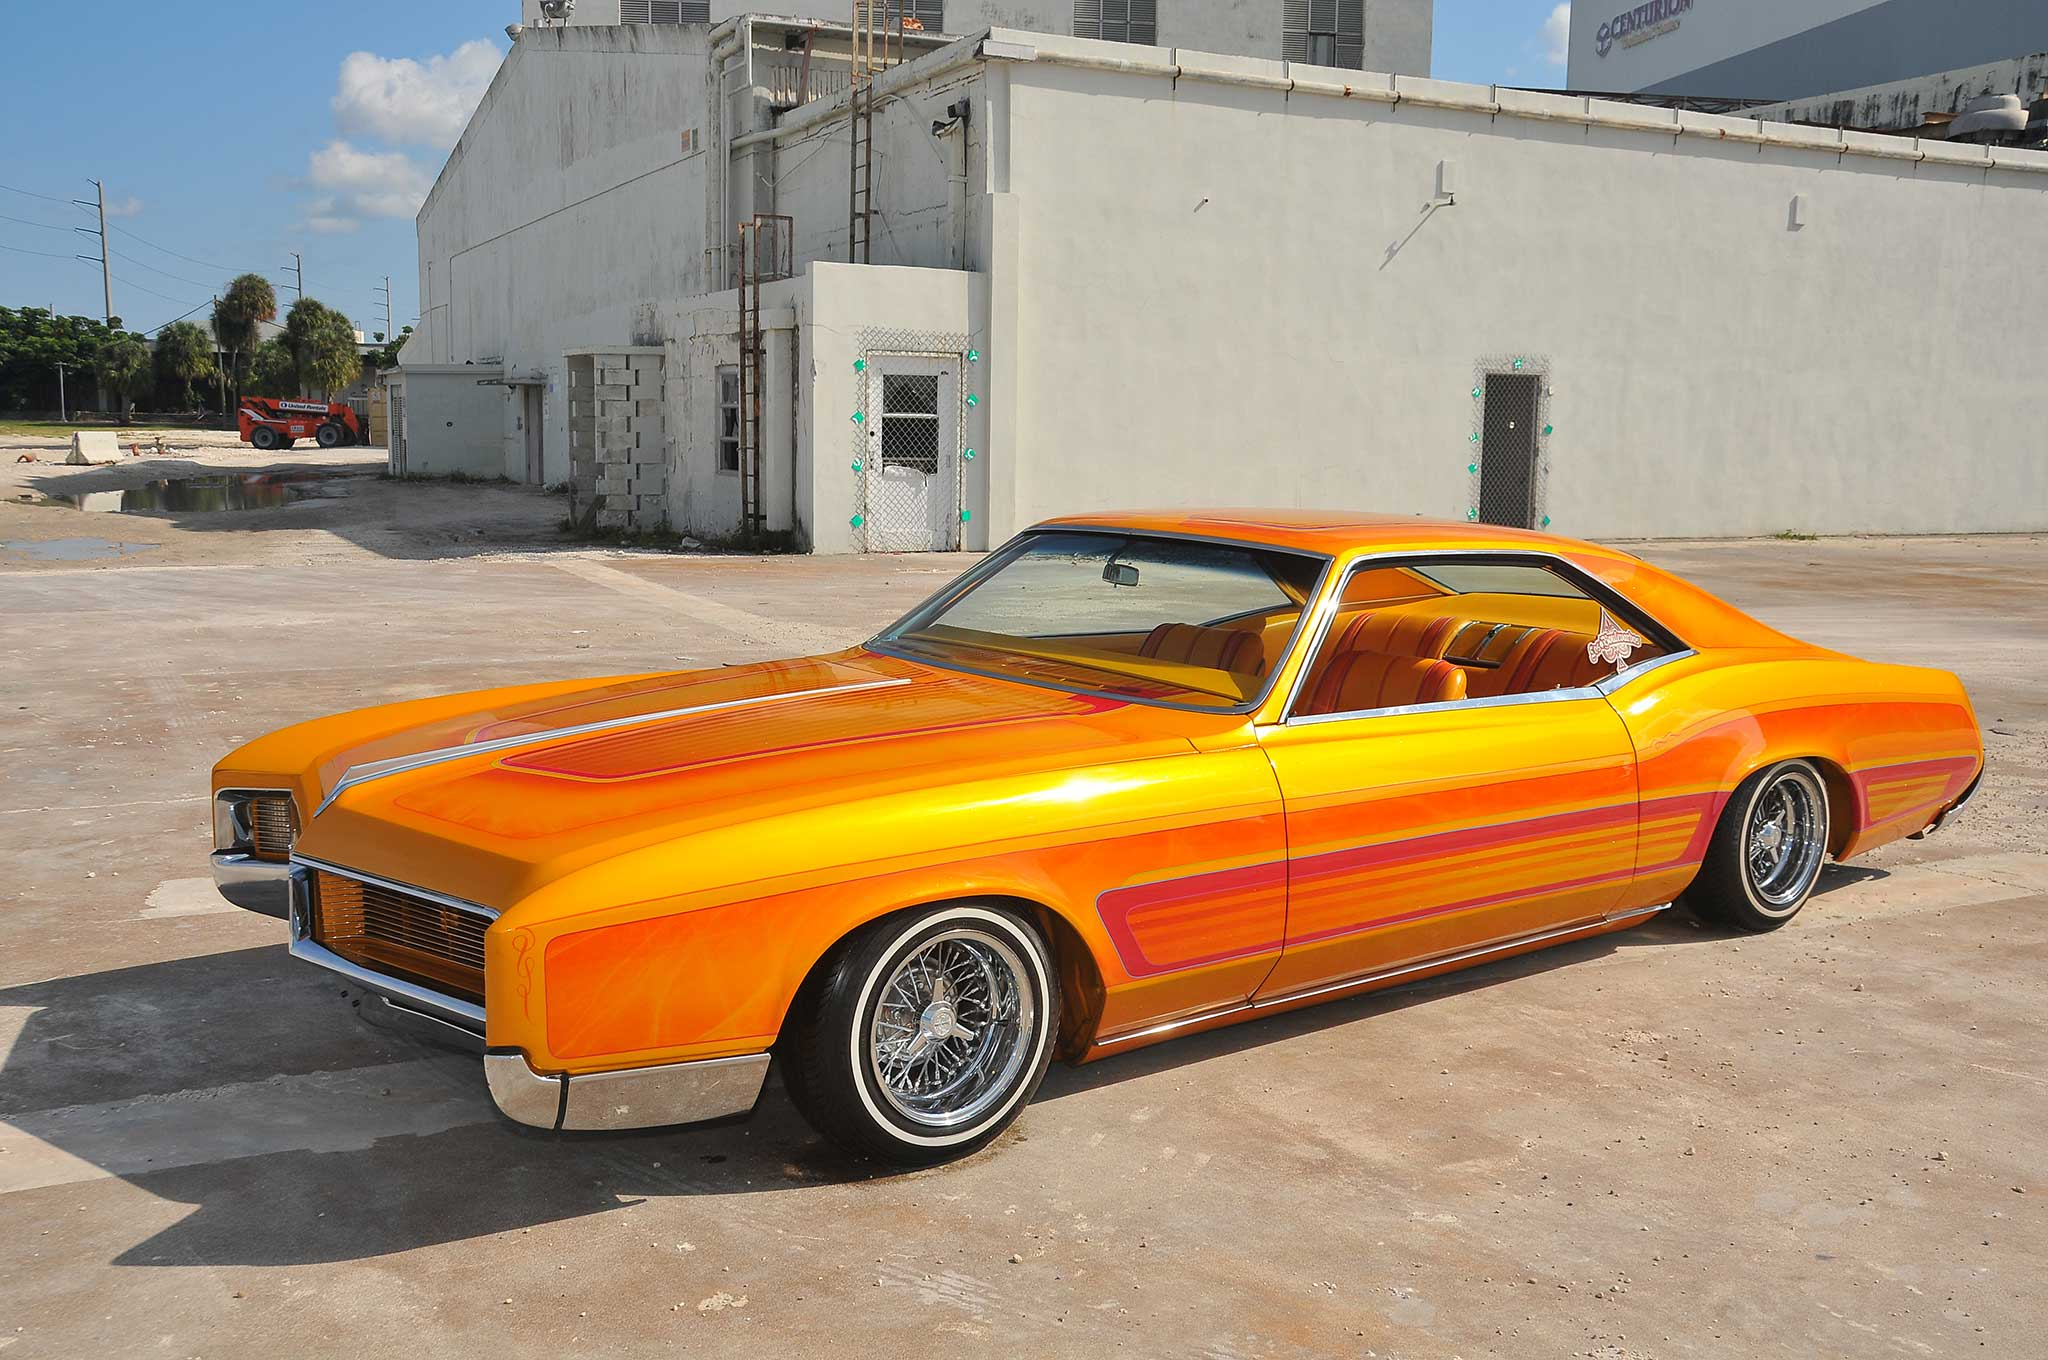 Anthony Williams' Passion Led Him to a '66 Buick Riviera - Lowrider